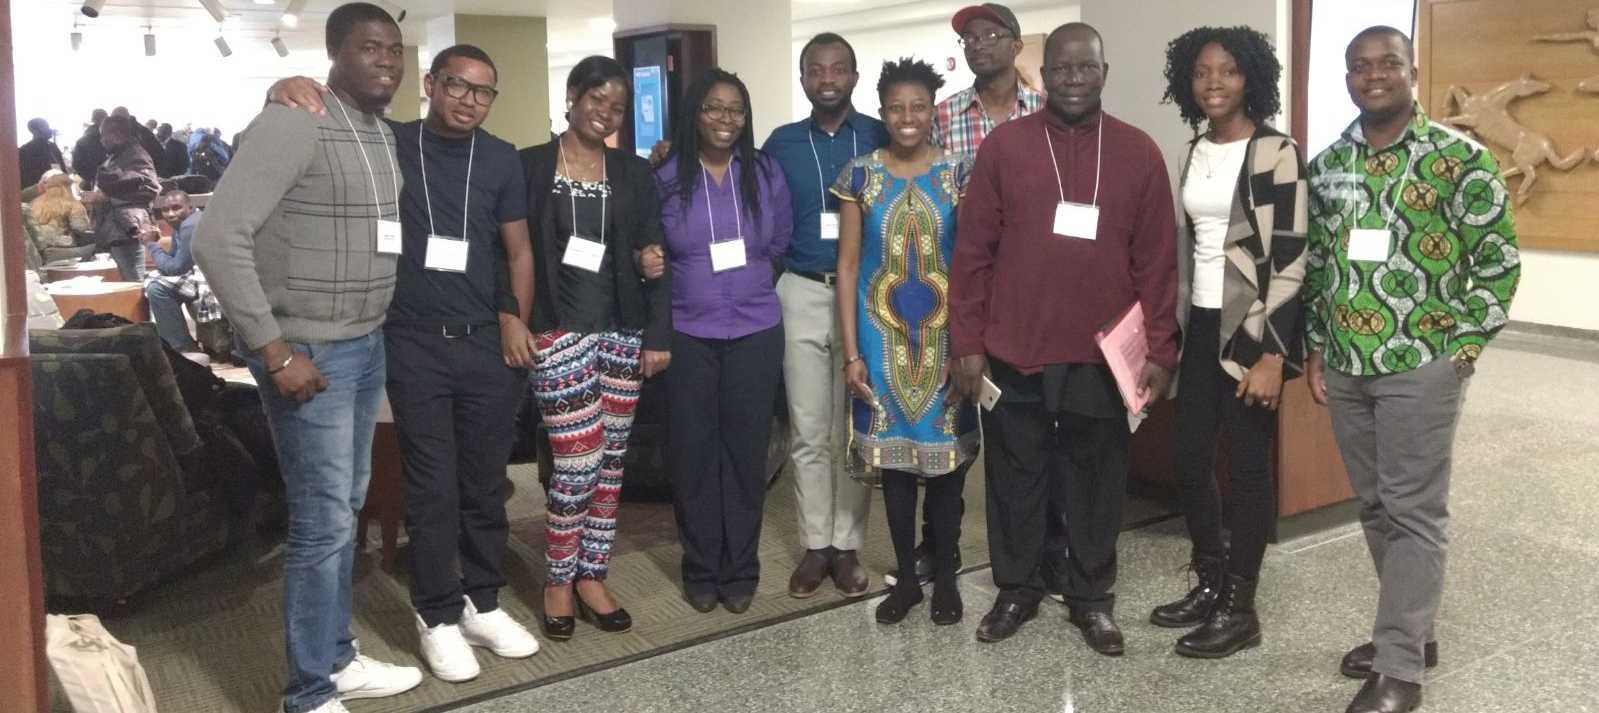 Graduate students from the Humanities present at African Linguistics conference